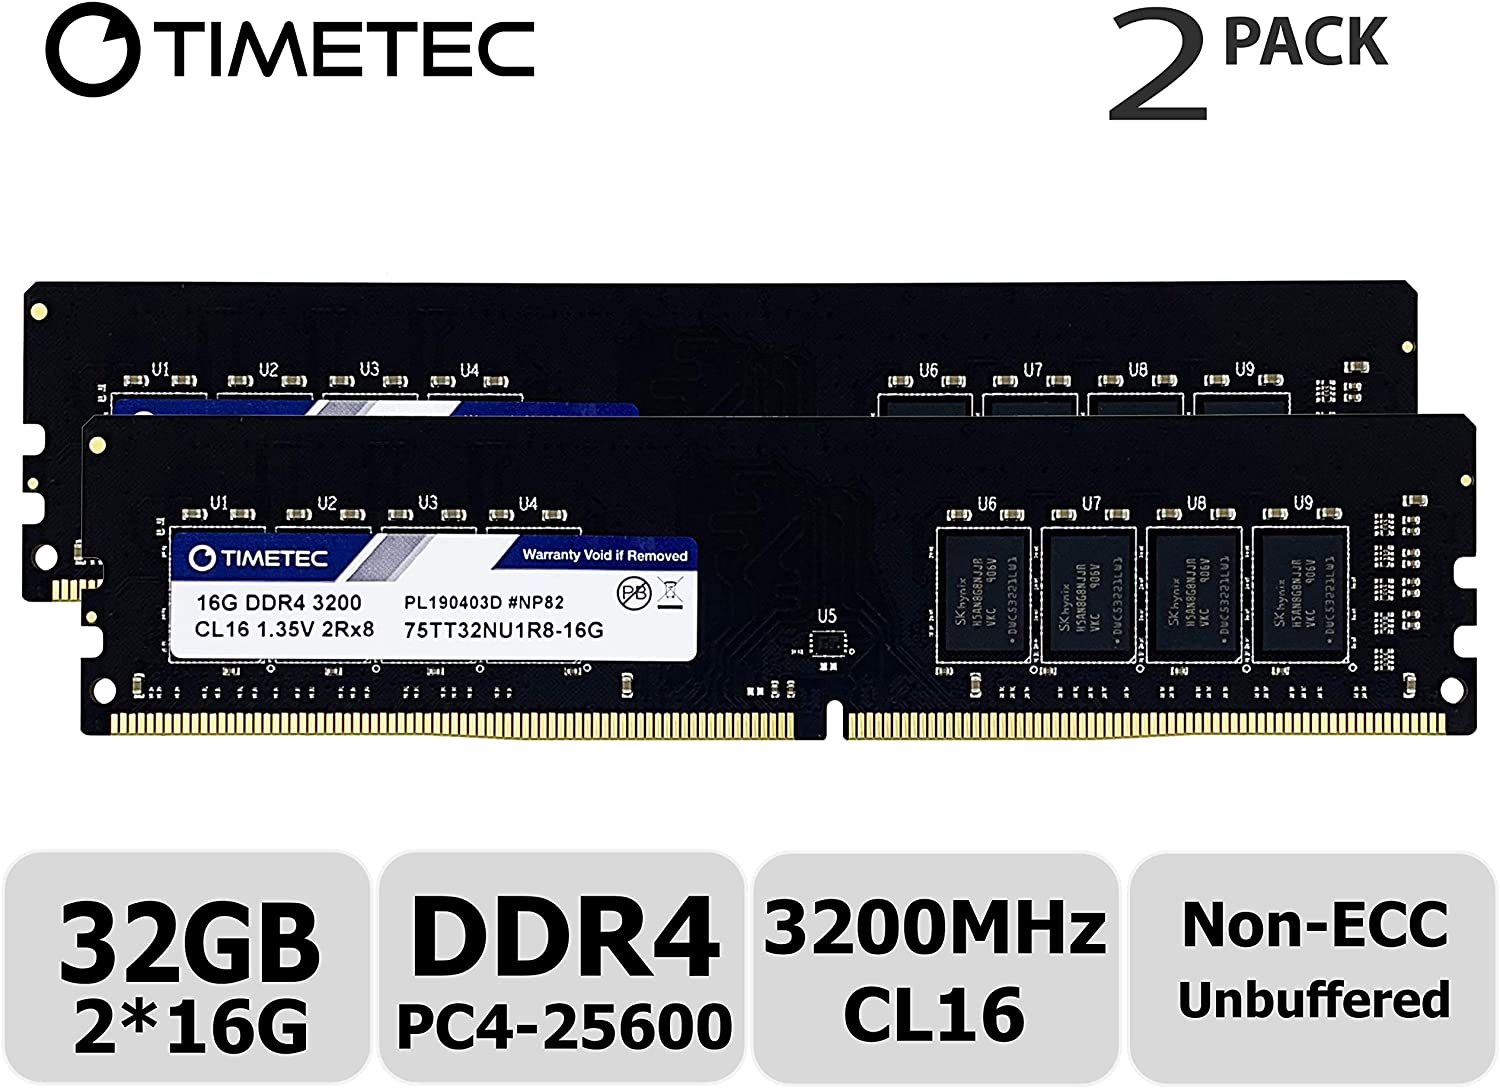 Timetec Extreme Performance Hynix IC 32GB KIT(2x16GB) DDR4 3200MHz PC4-25600 CL16 1.35V Unbuffered Non-ECC for Gaming and High-Performance Compatible with AMD and Intel Desktop Memory(32GB KIT(2x16GB)